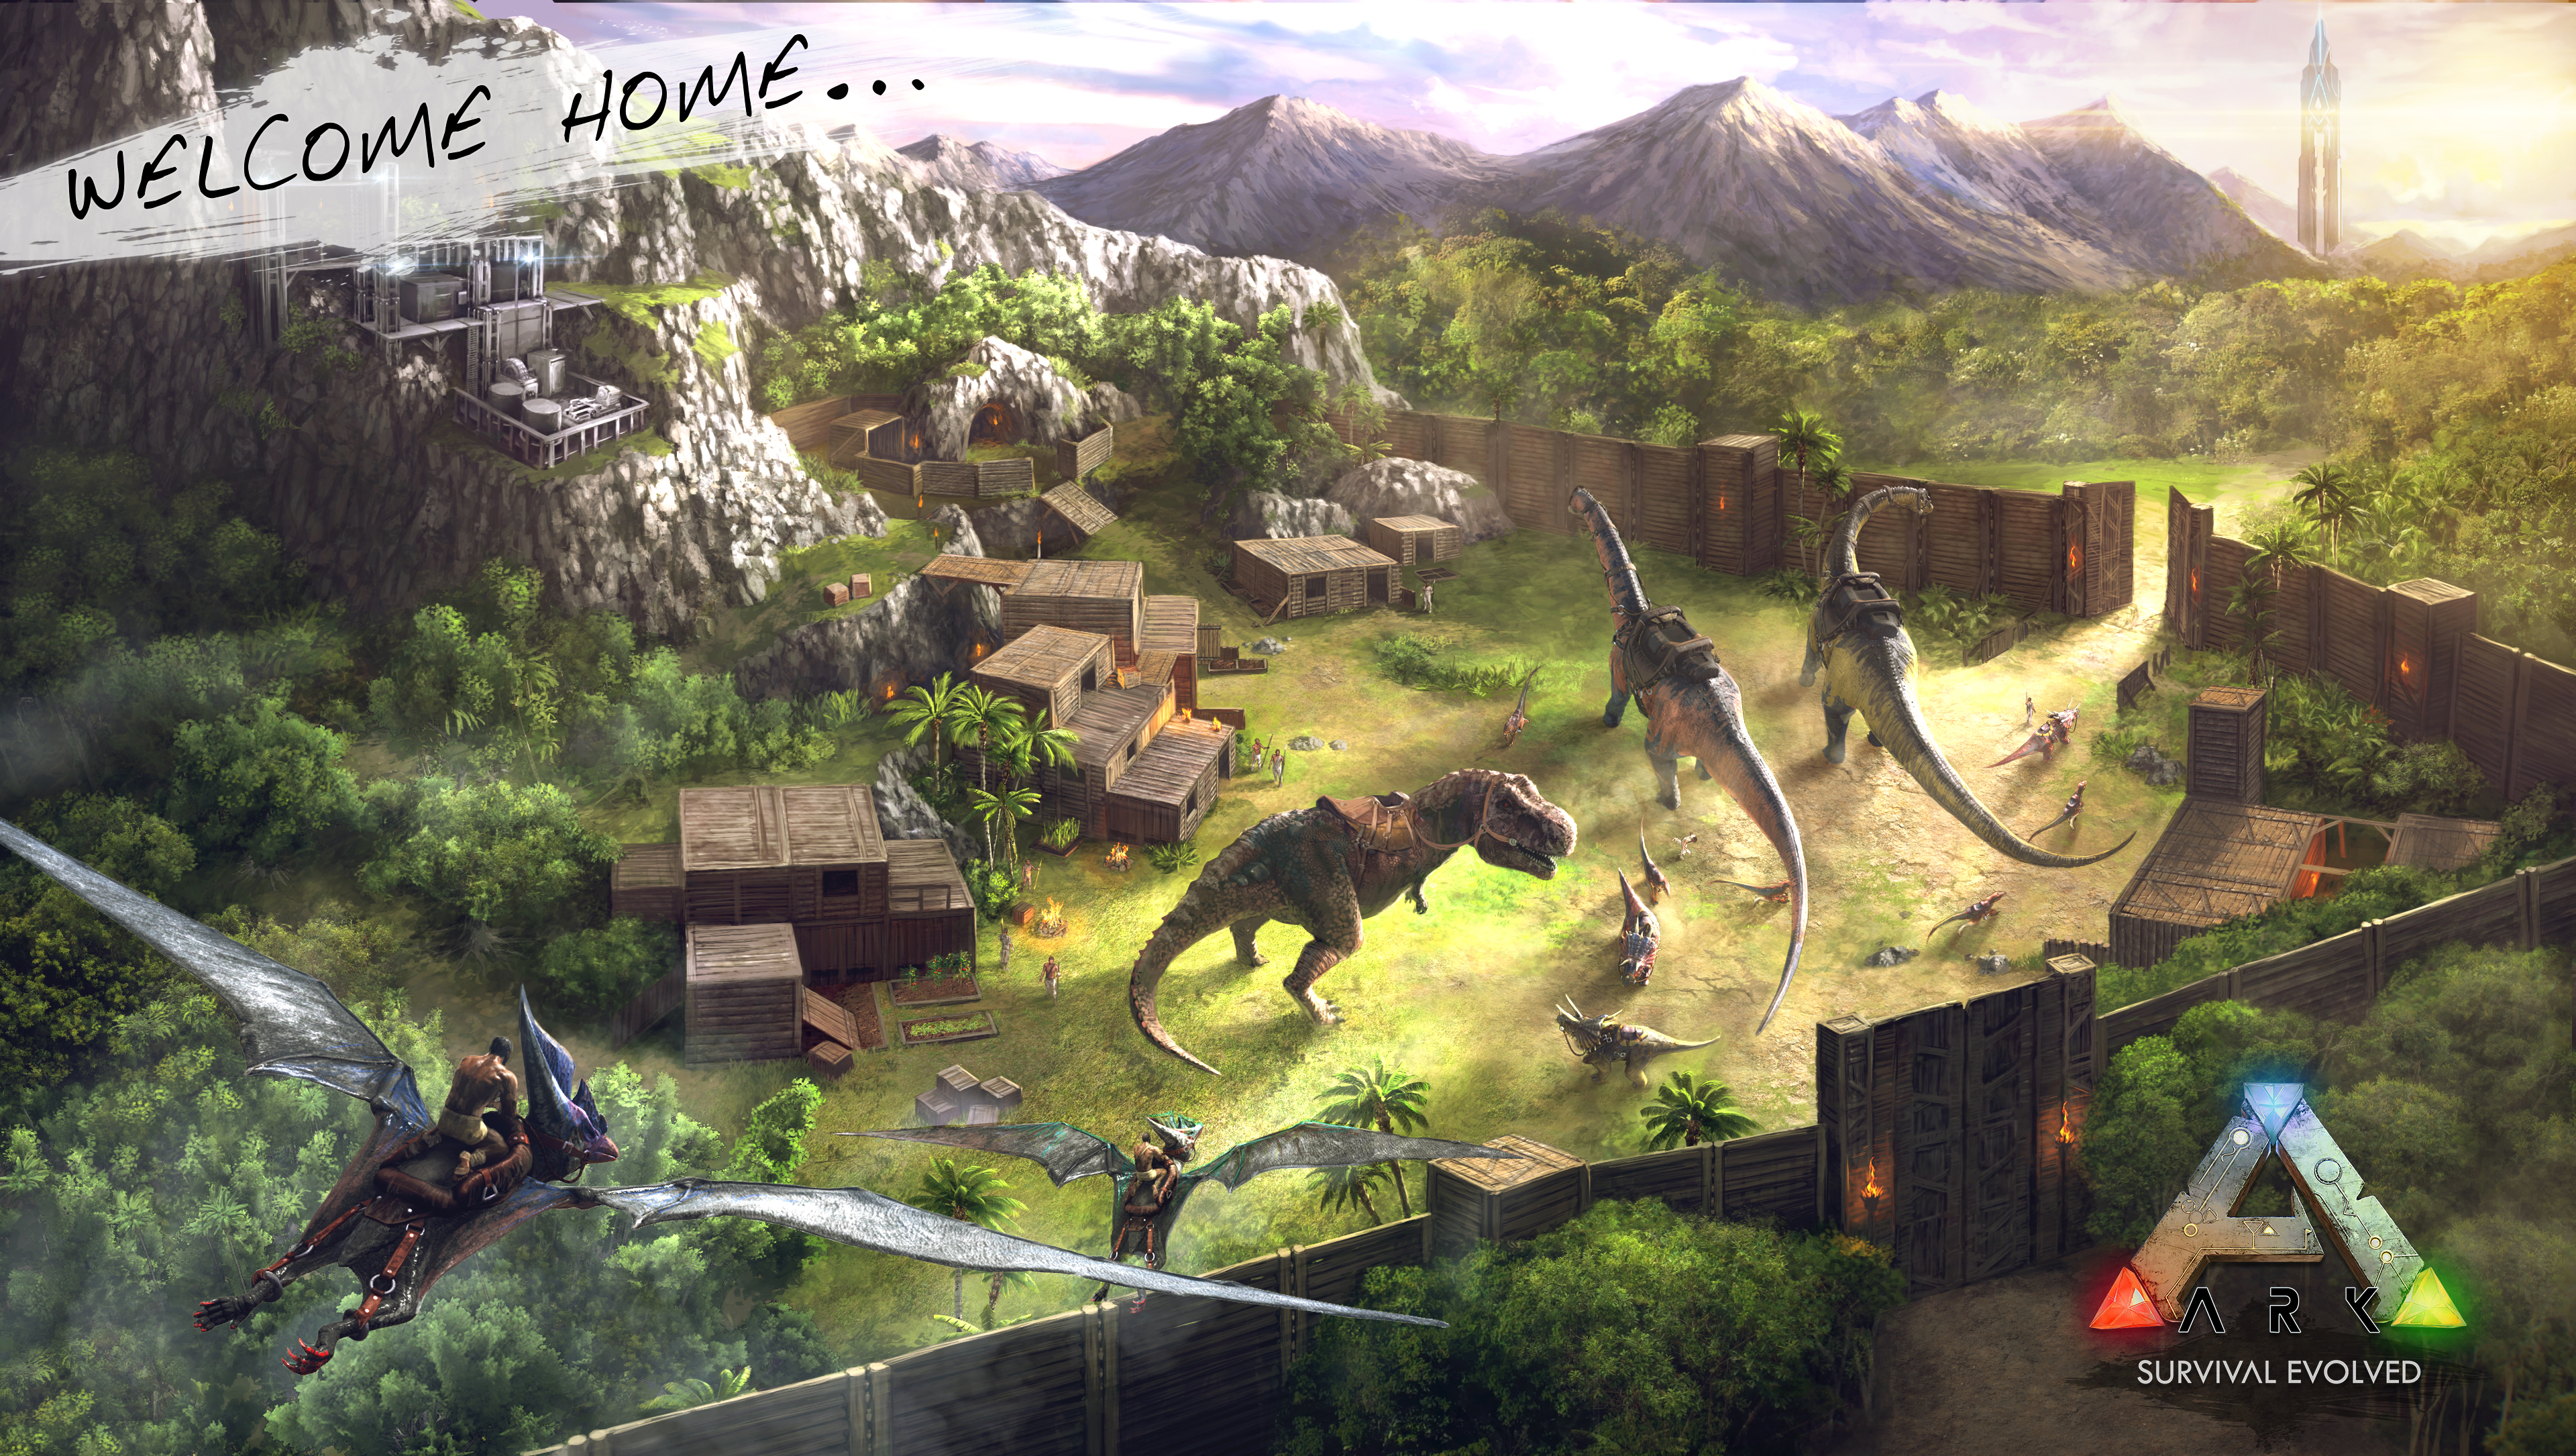 Ark survival evolved patch notes - Release Status Update